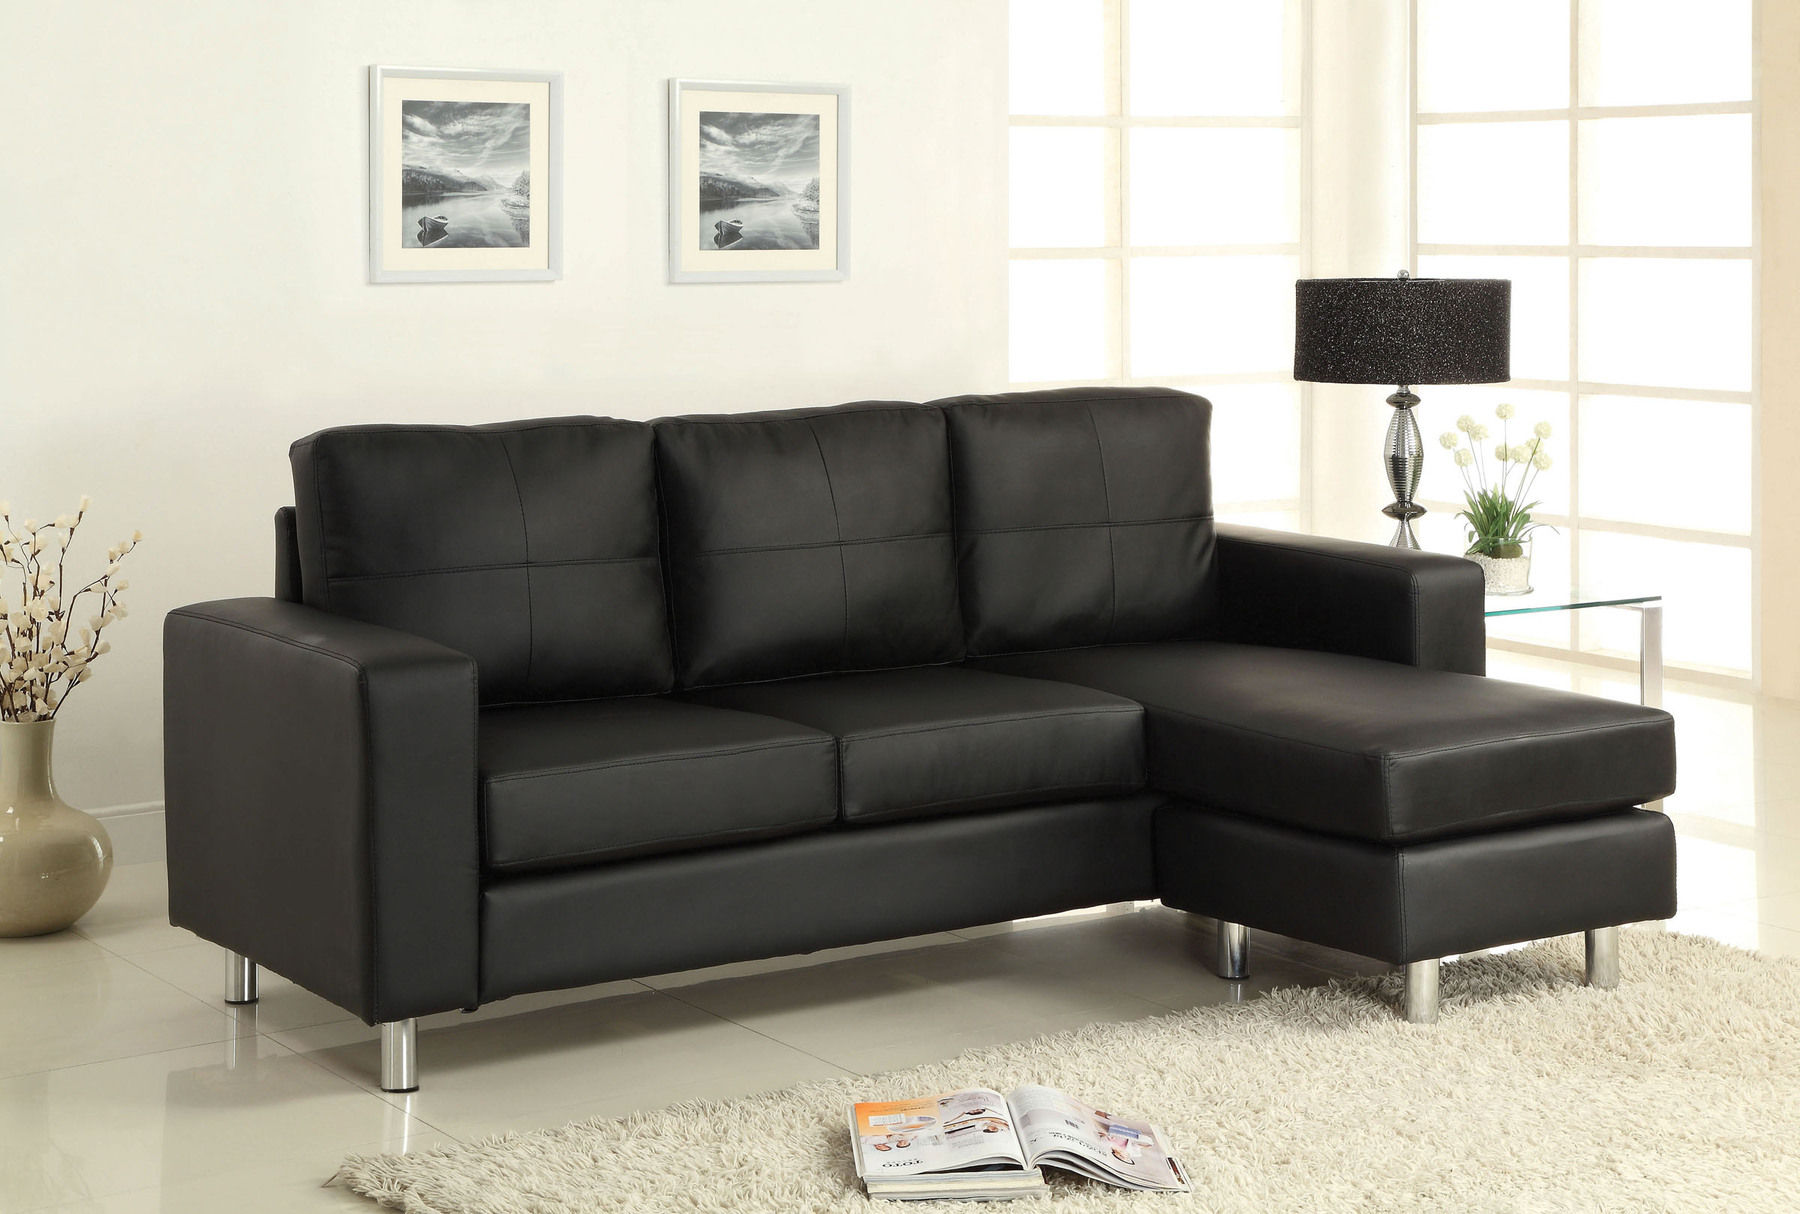 Cool Avon Black Sectional Sofa Gmtry Best Dining Table And Chair Ideas Images Gmtryco